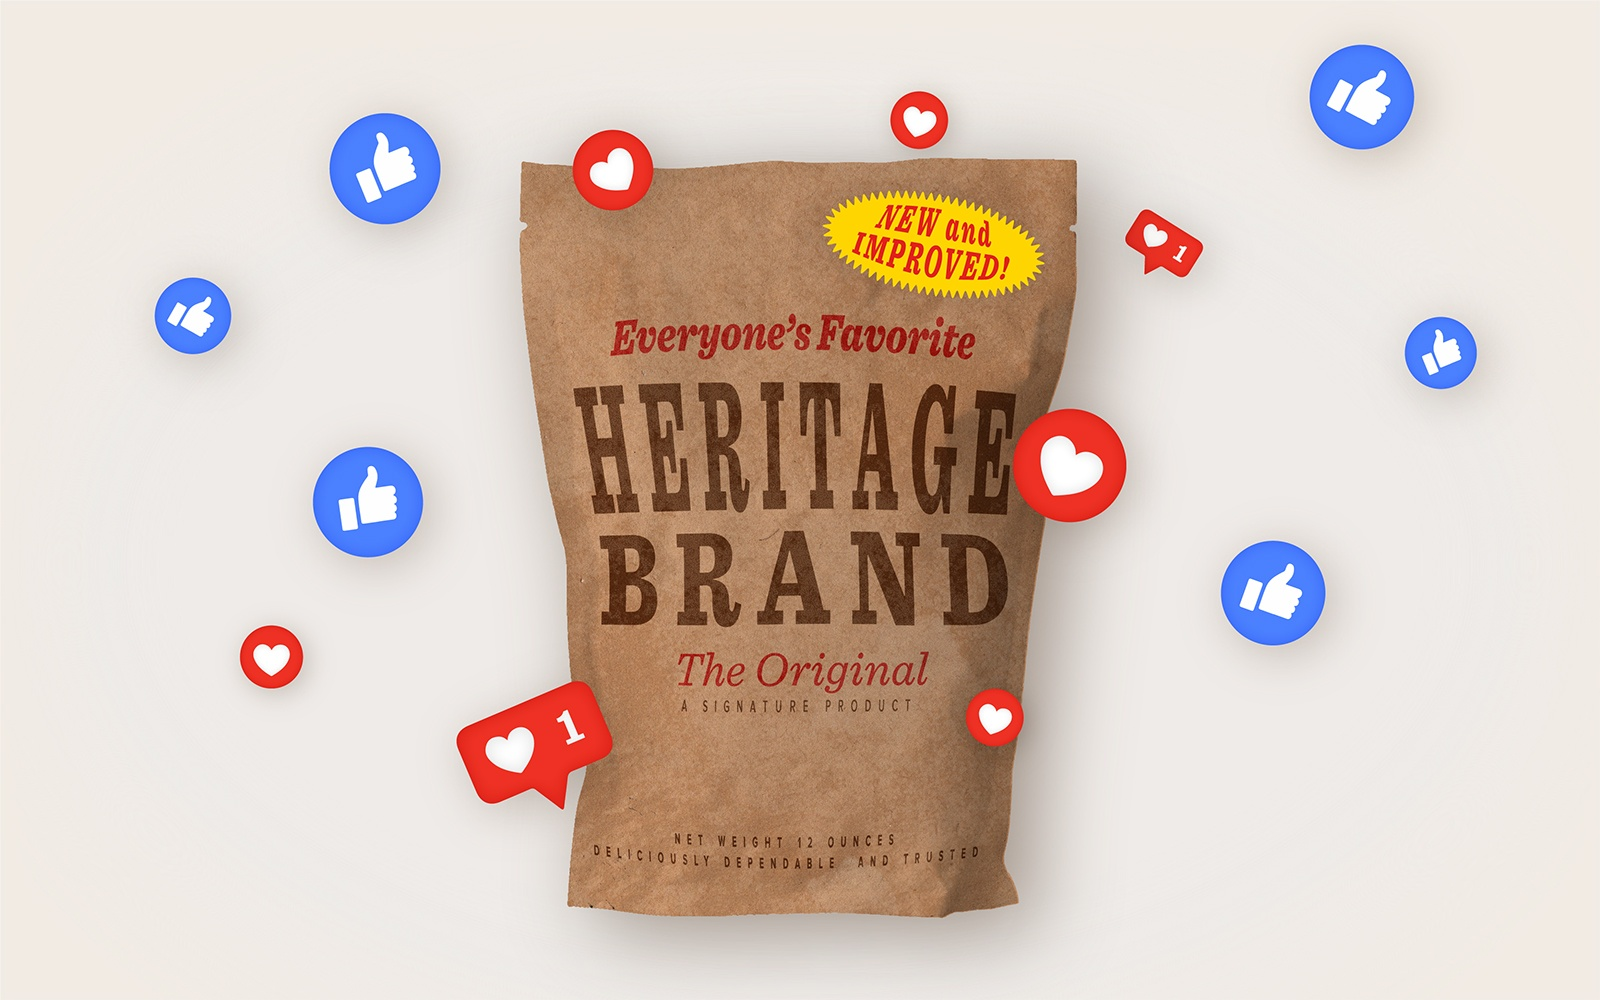 The Way Forward for Heritage Brands